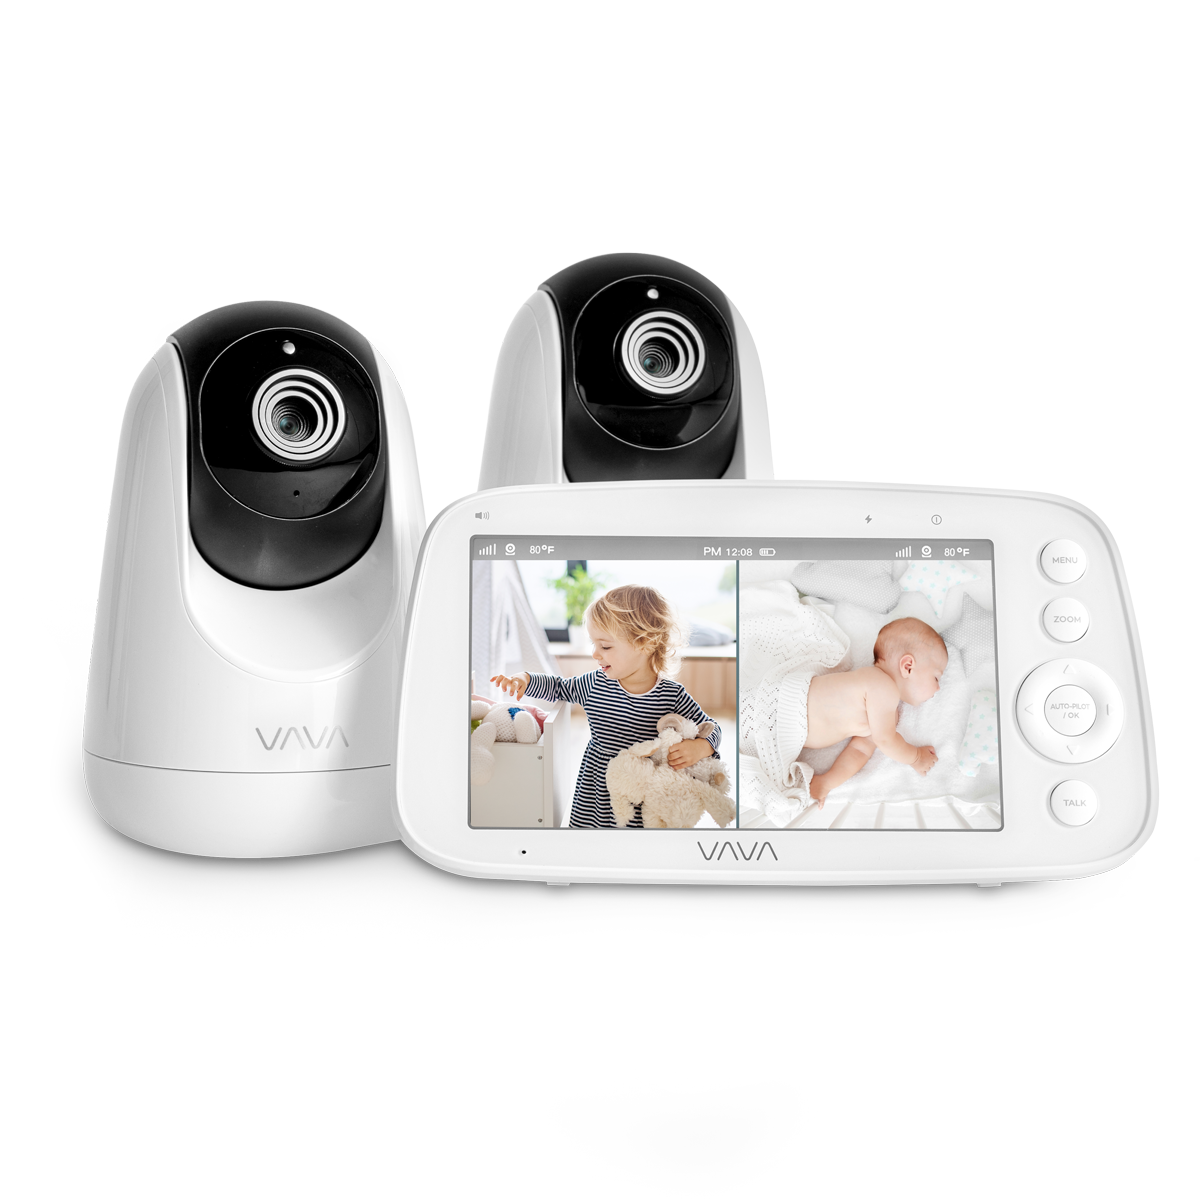 VAVA SPLIT SCREEN BABY MONITOR